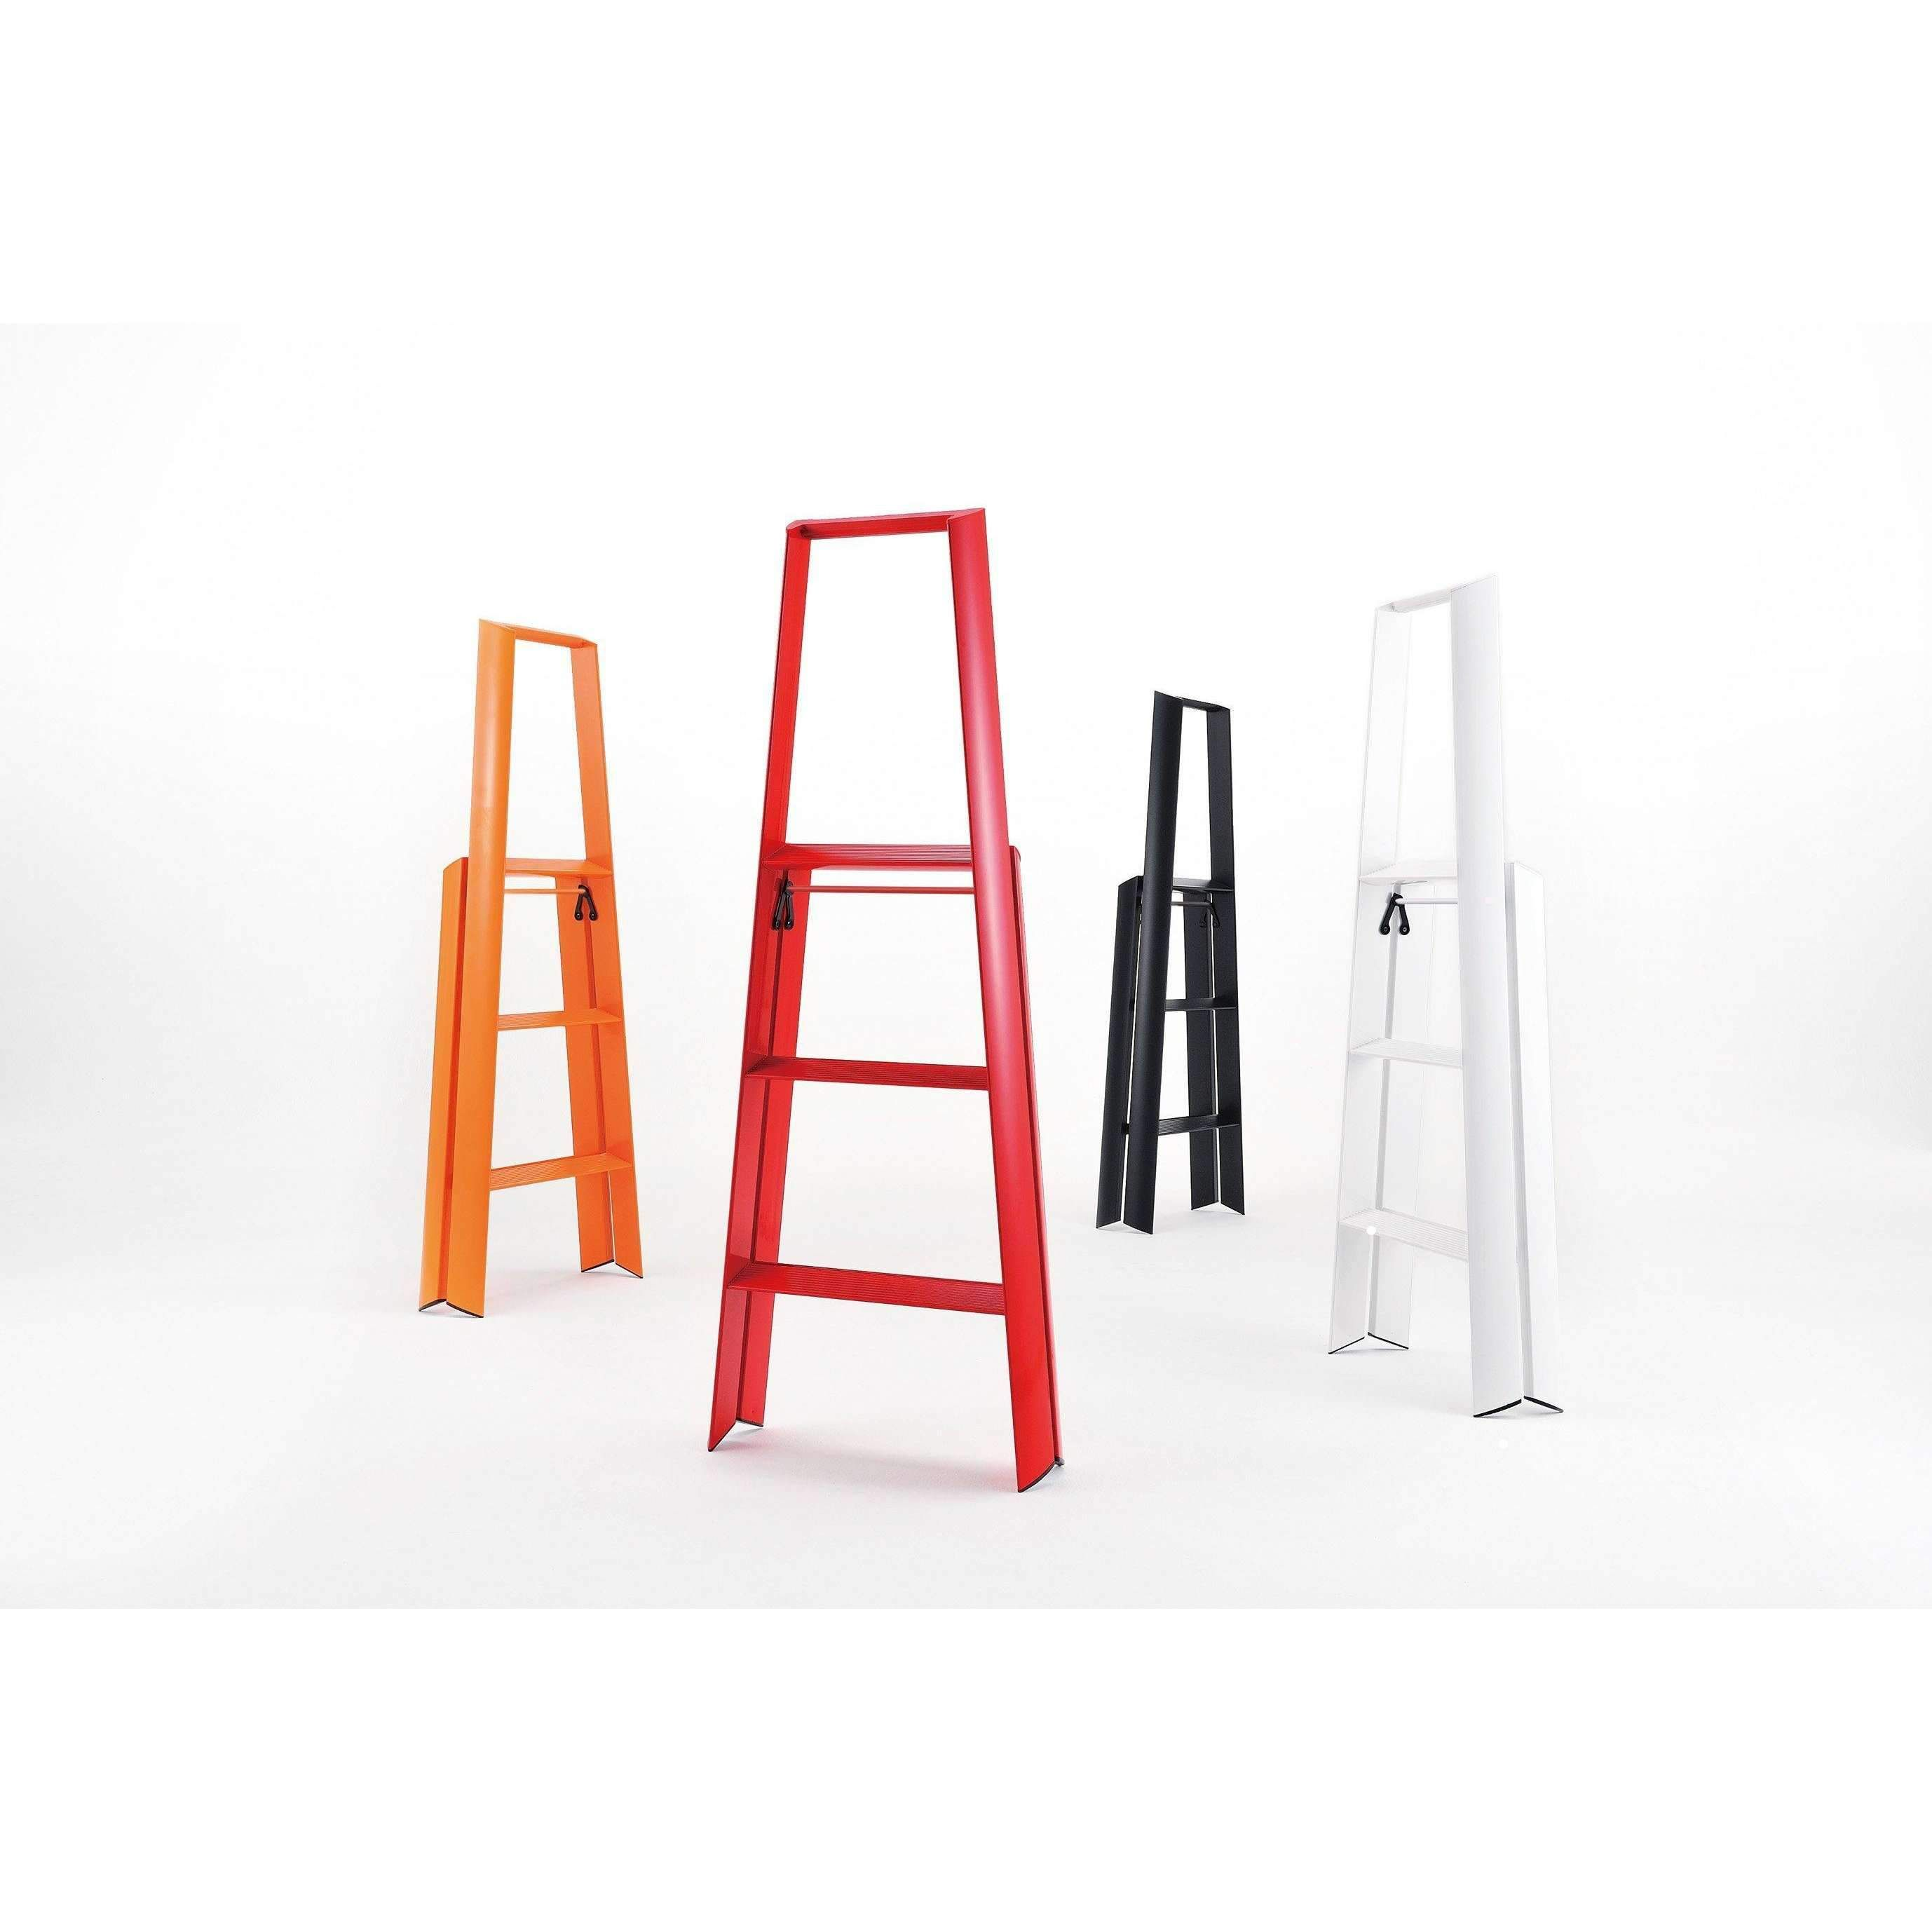 Lucano 3 Step Ladder Reddefault Title In 2020 Step Ladders 3 Step Ladder Kitchen Step Ladder